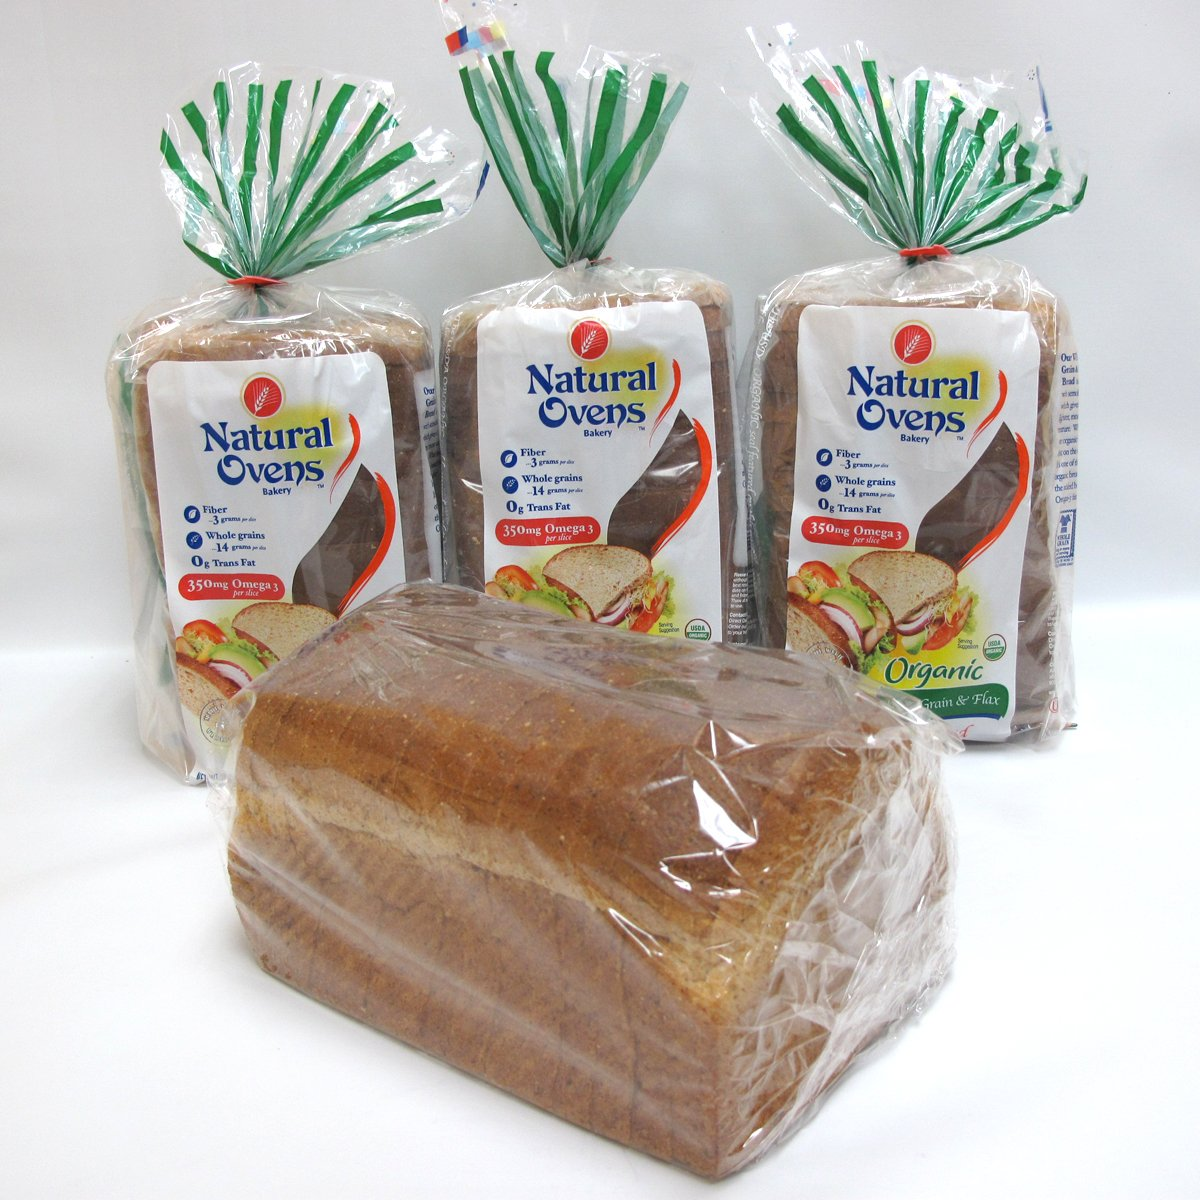 Natural Ovens Organic Whole Grain & Flax Bread (Pack of 4)